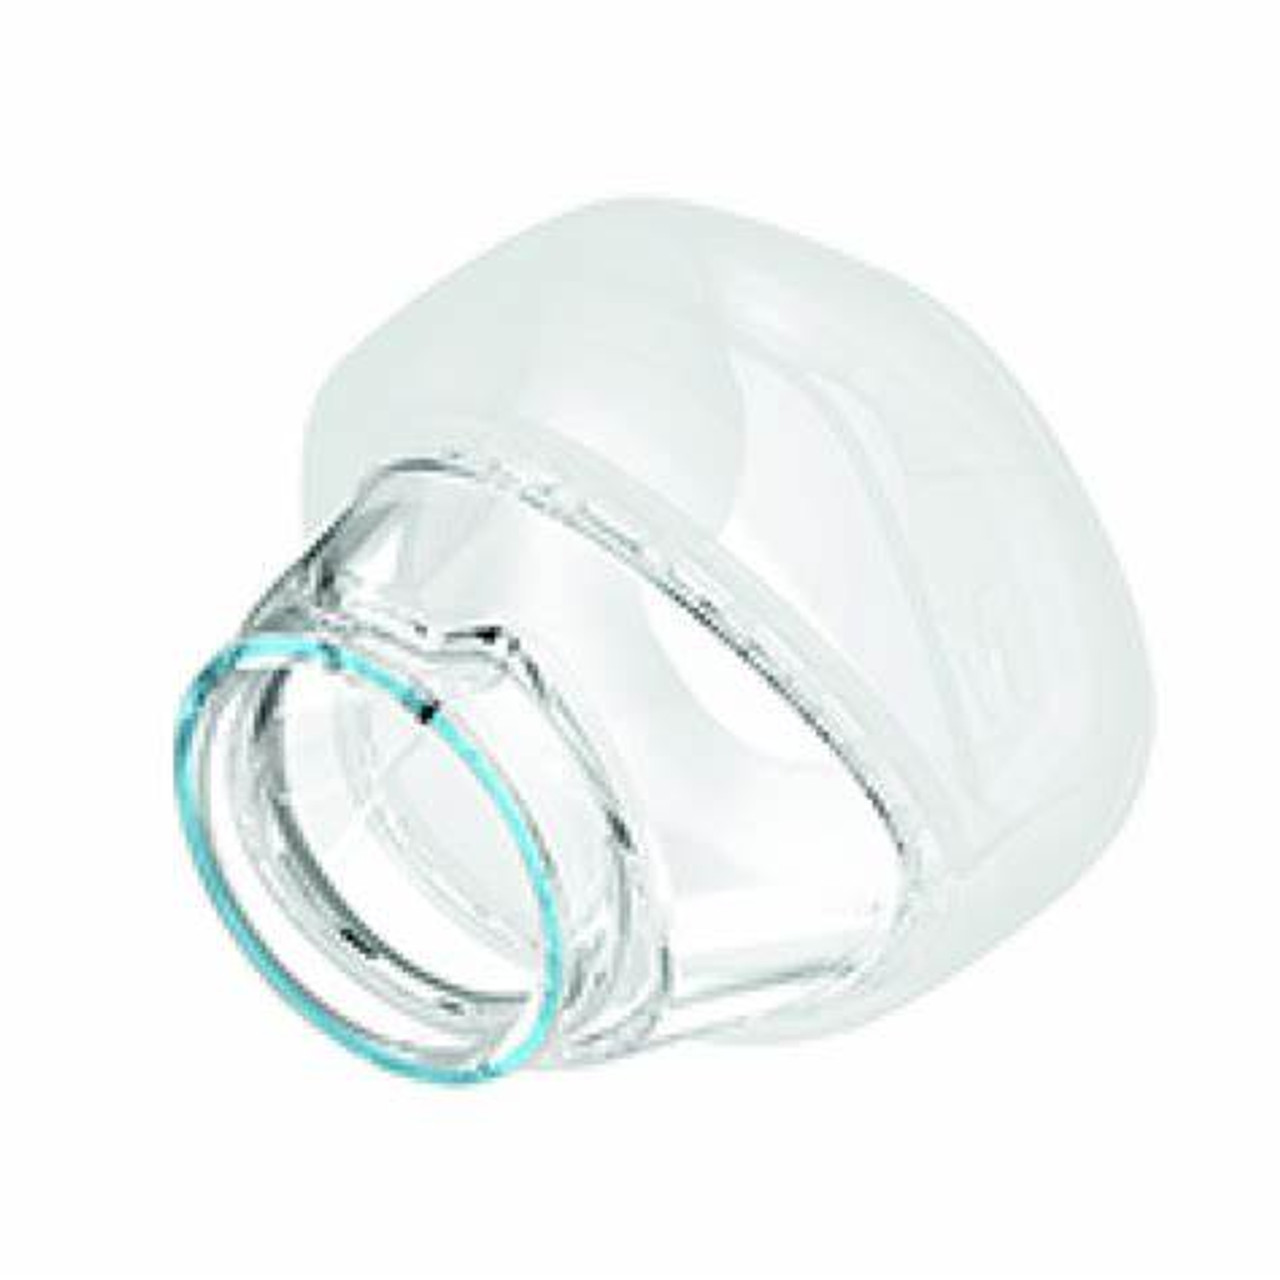 Fisher and Paykel Eson 2 RollFit Silicone Cushion CPAP